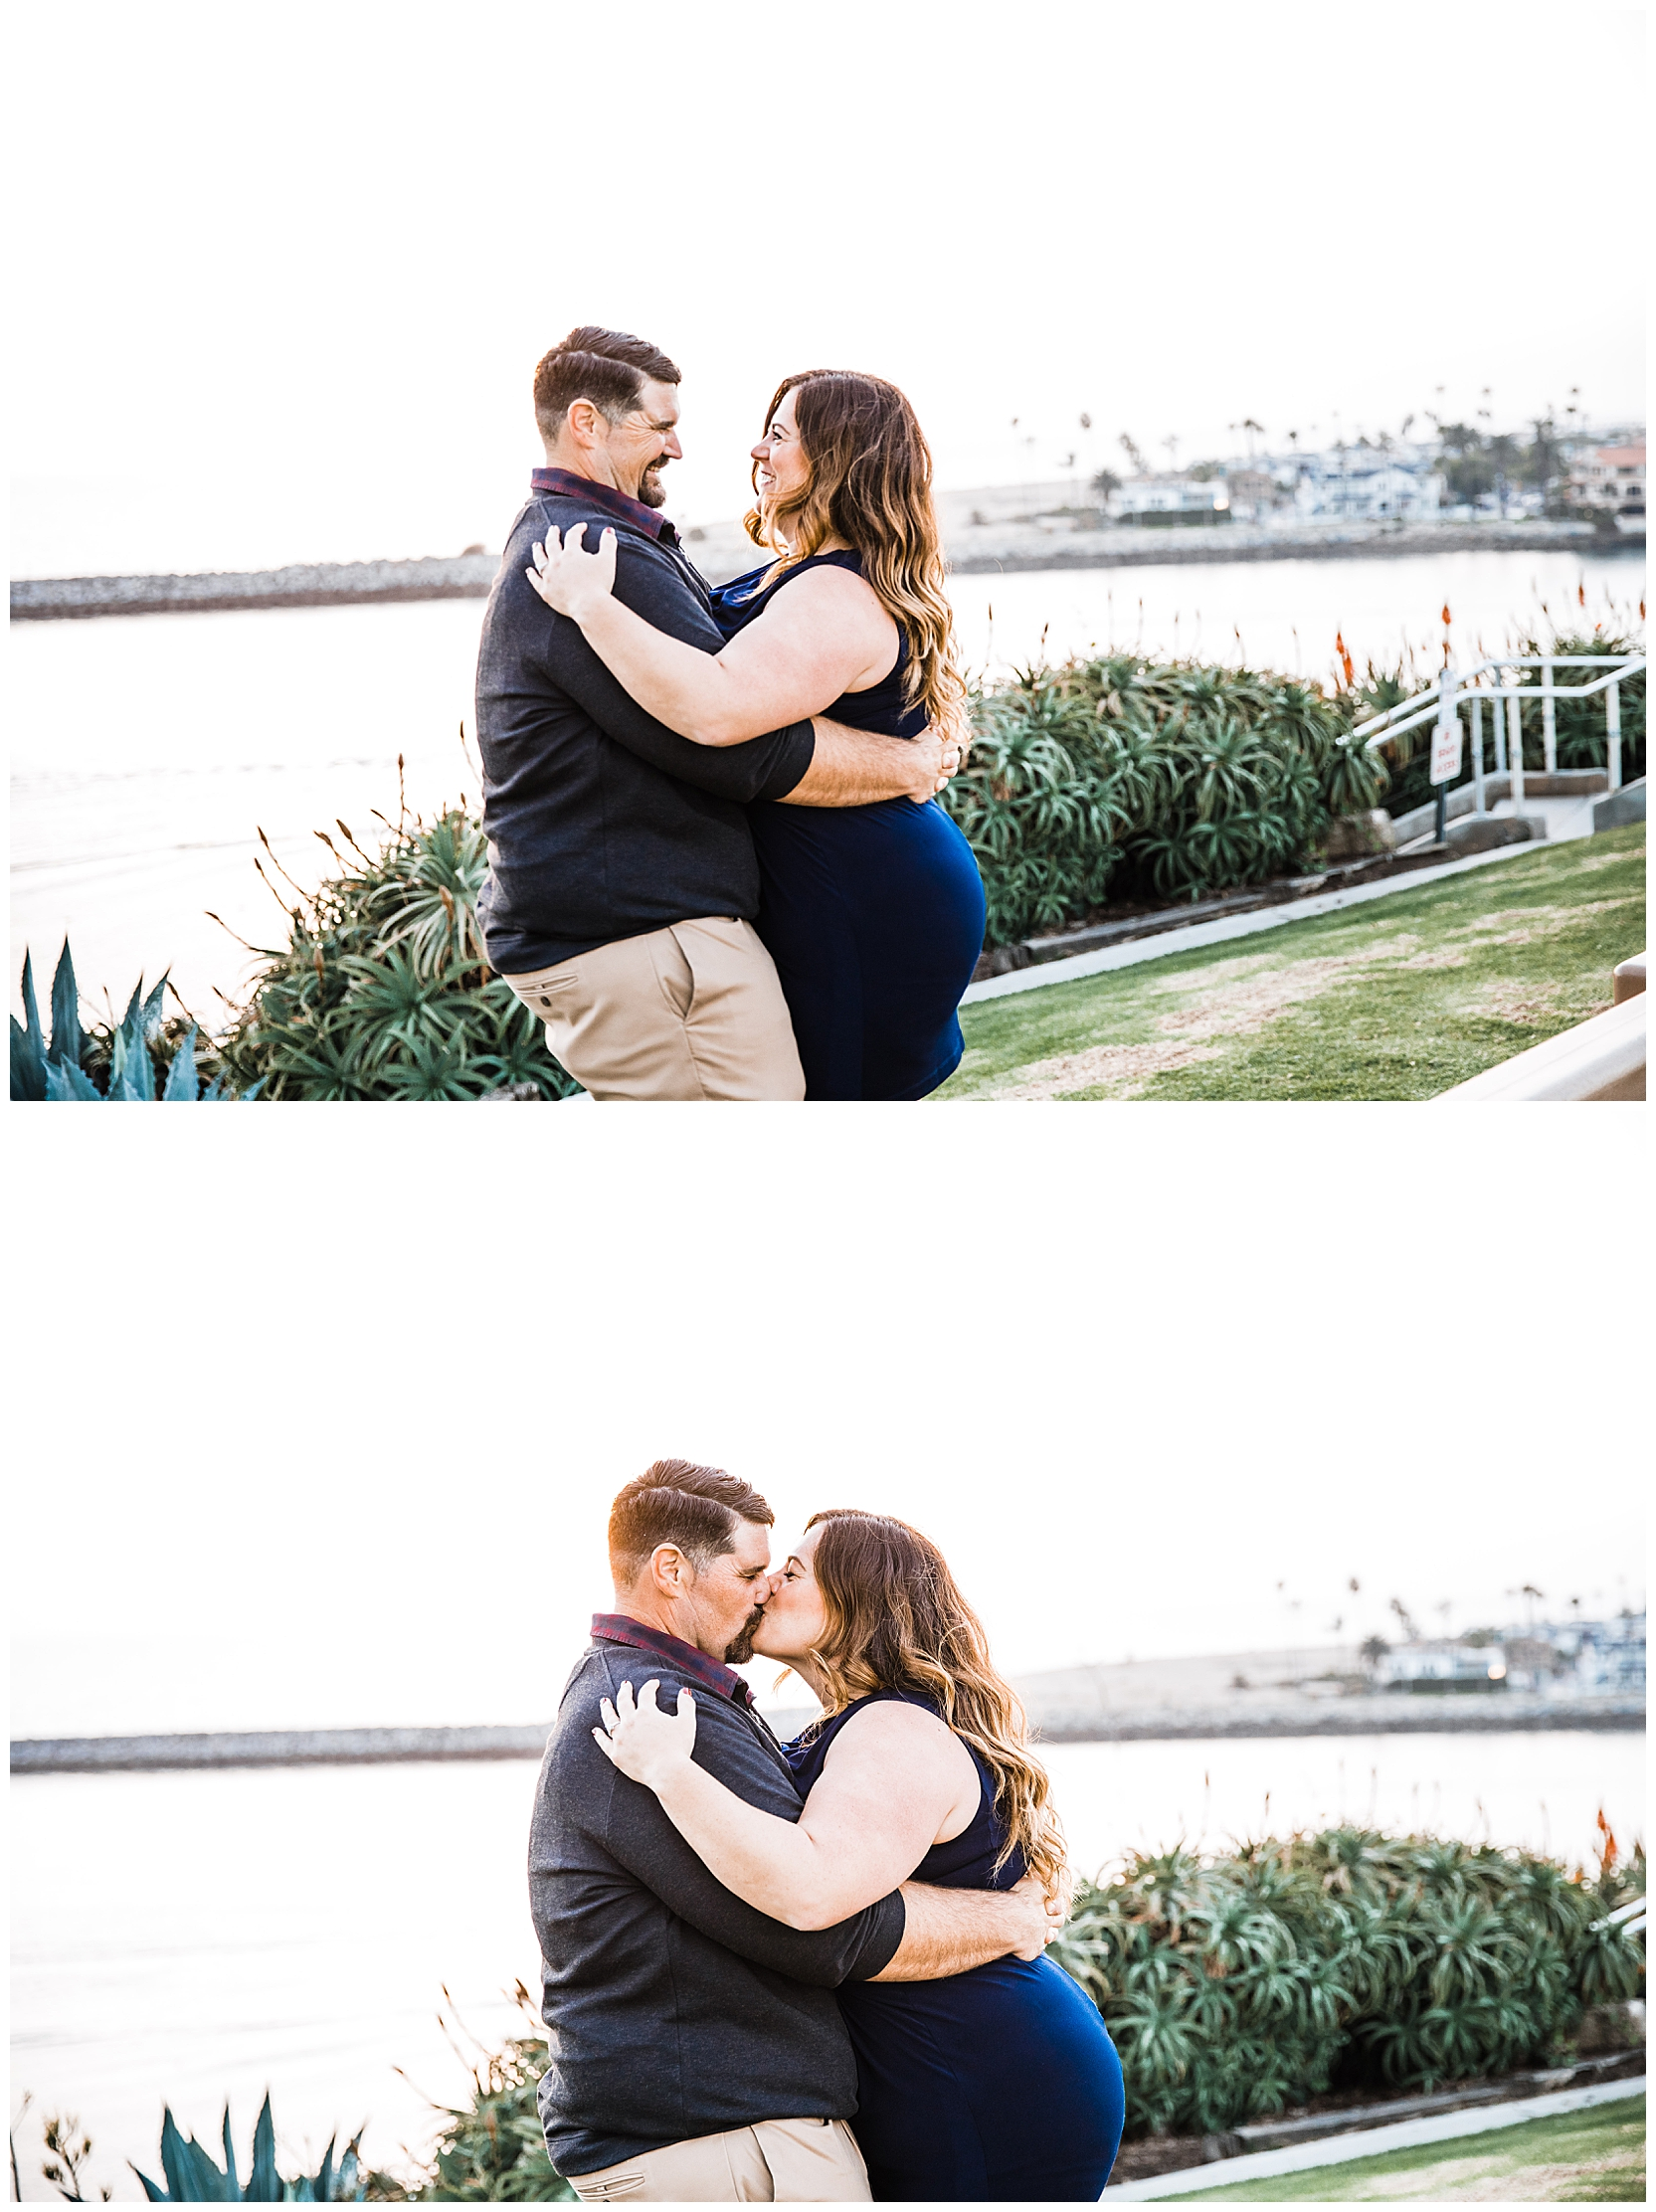 jessicafredericks_huntingtonbeach_proposal_sunset_engagement_0030.jpg